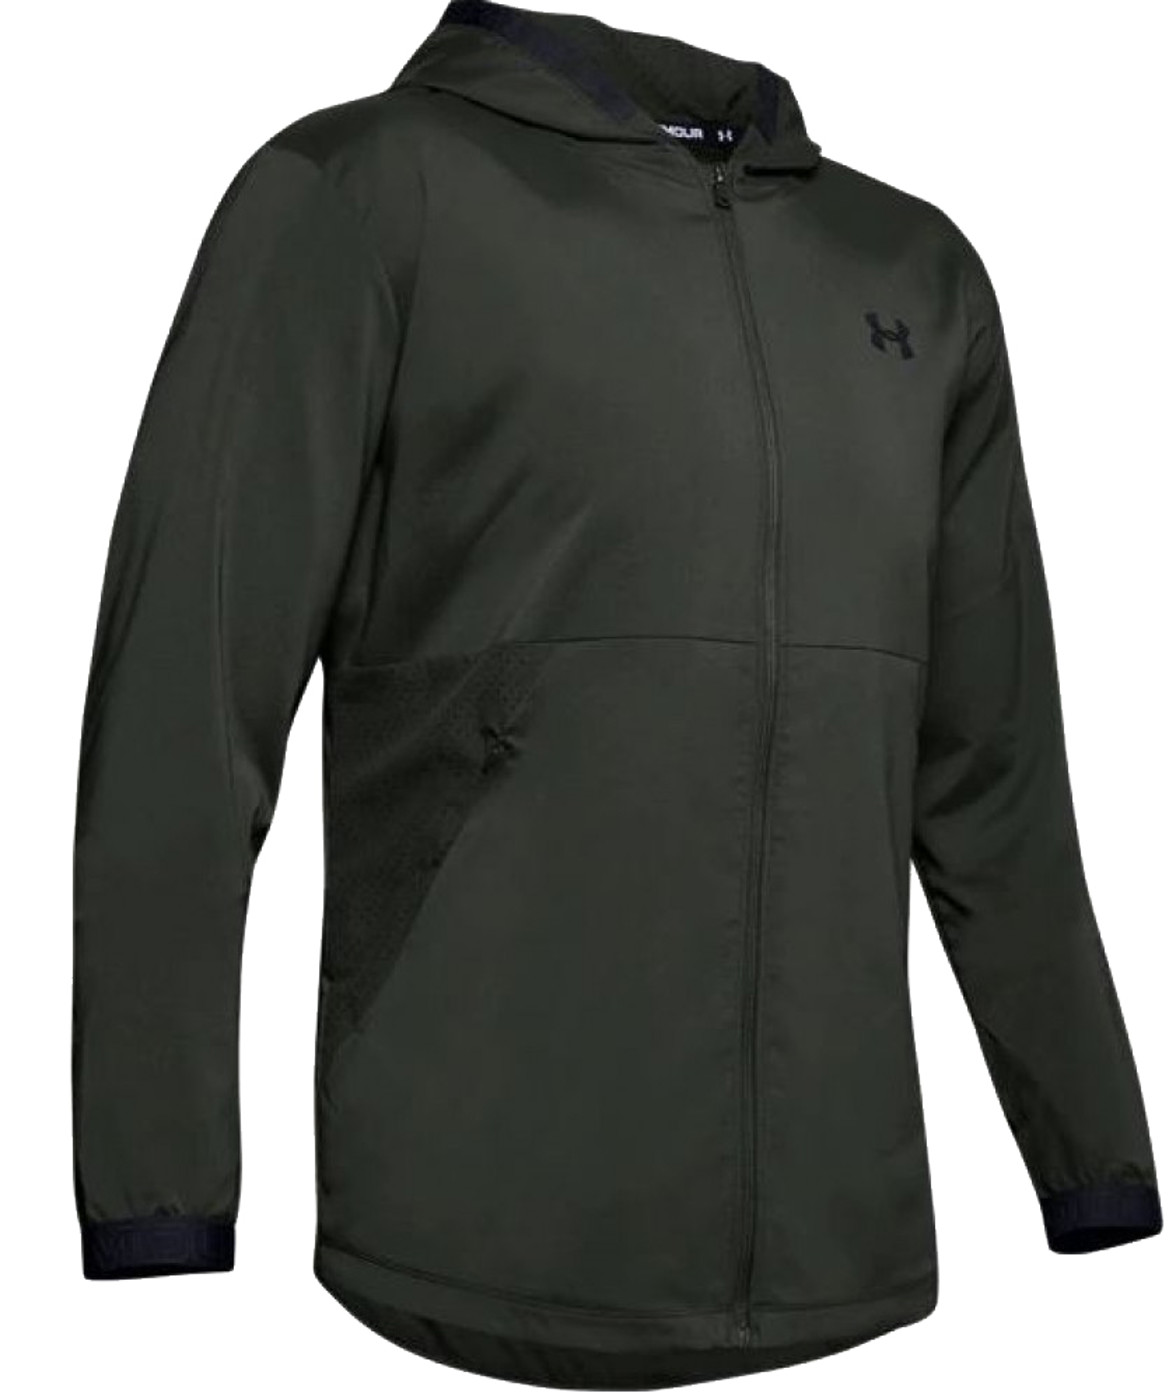 UNDER ARMOUR Vanish Woven Jacket - Herren